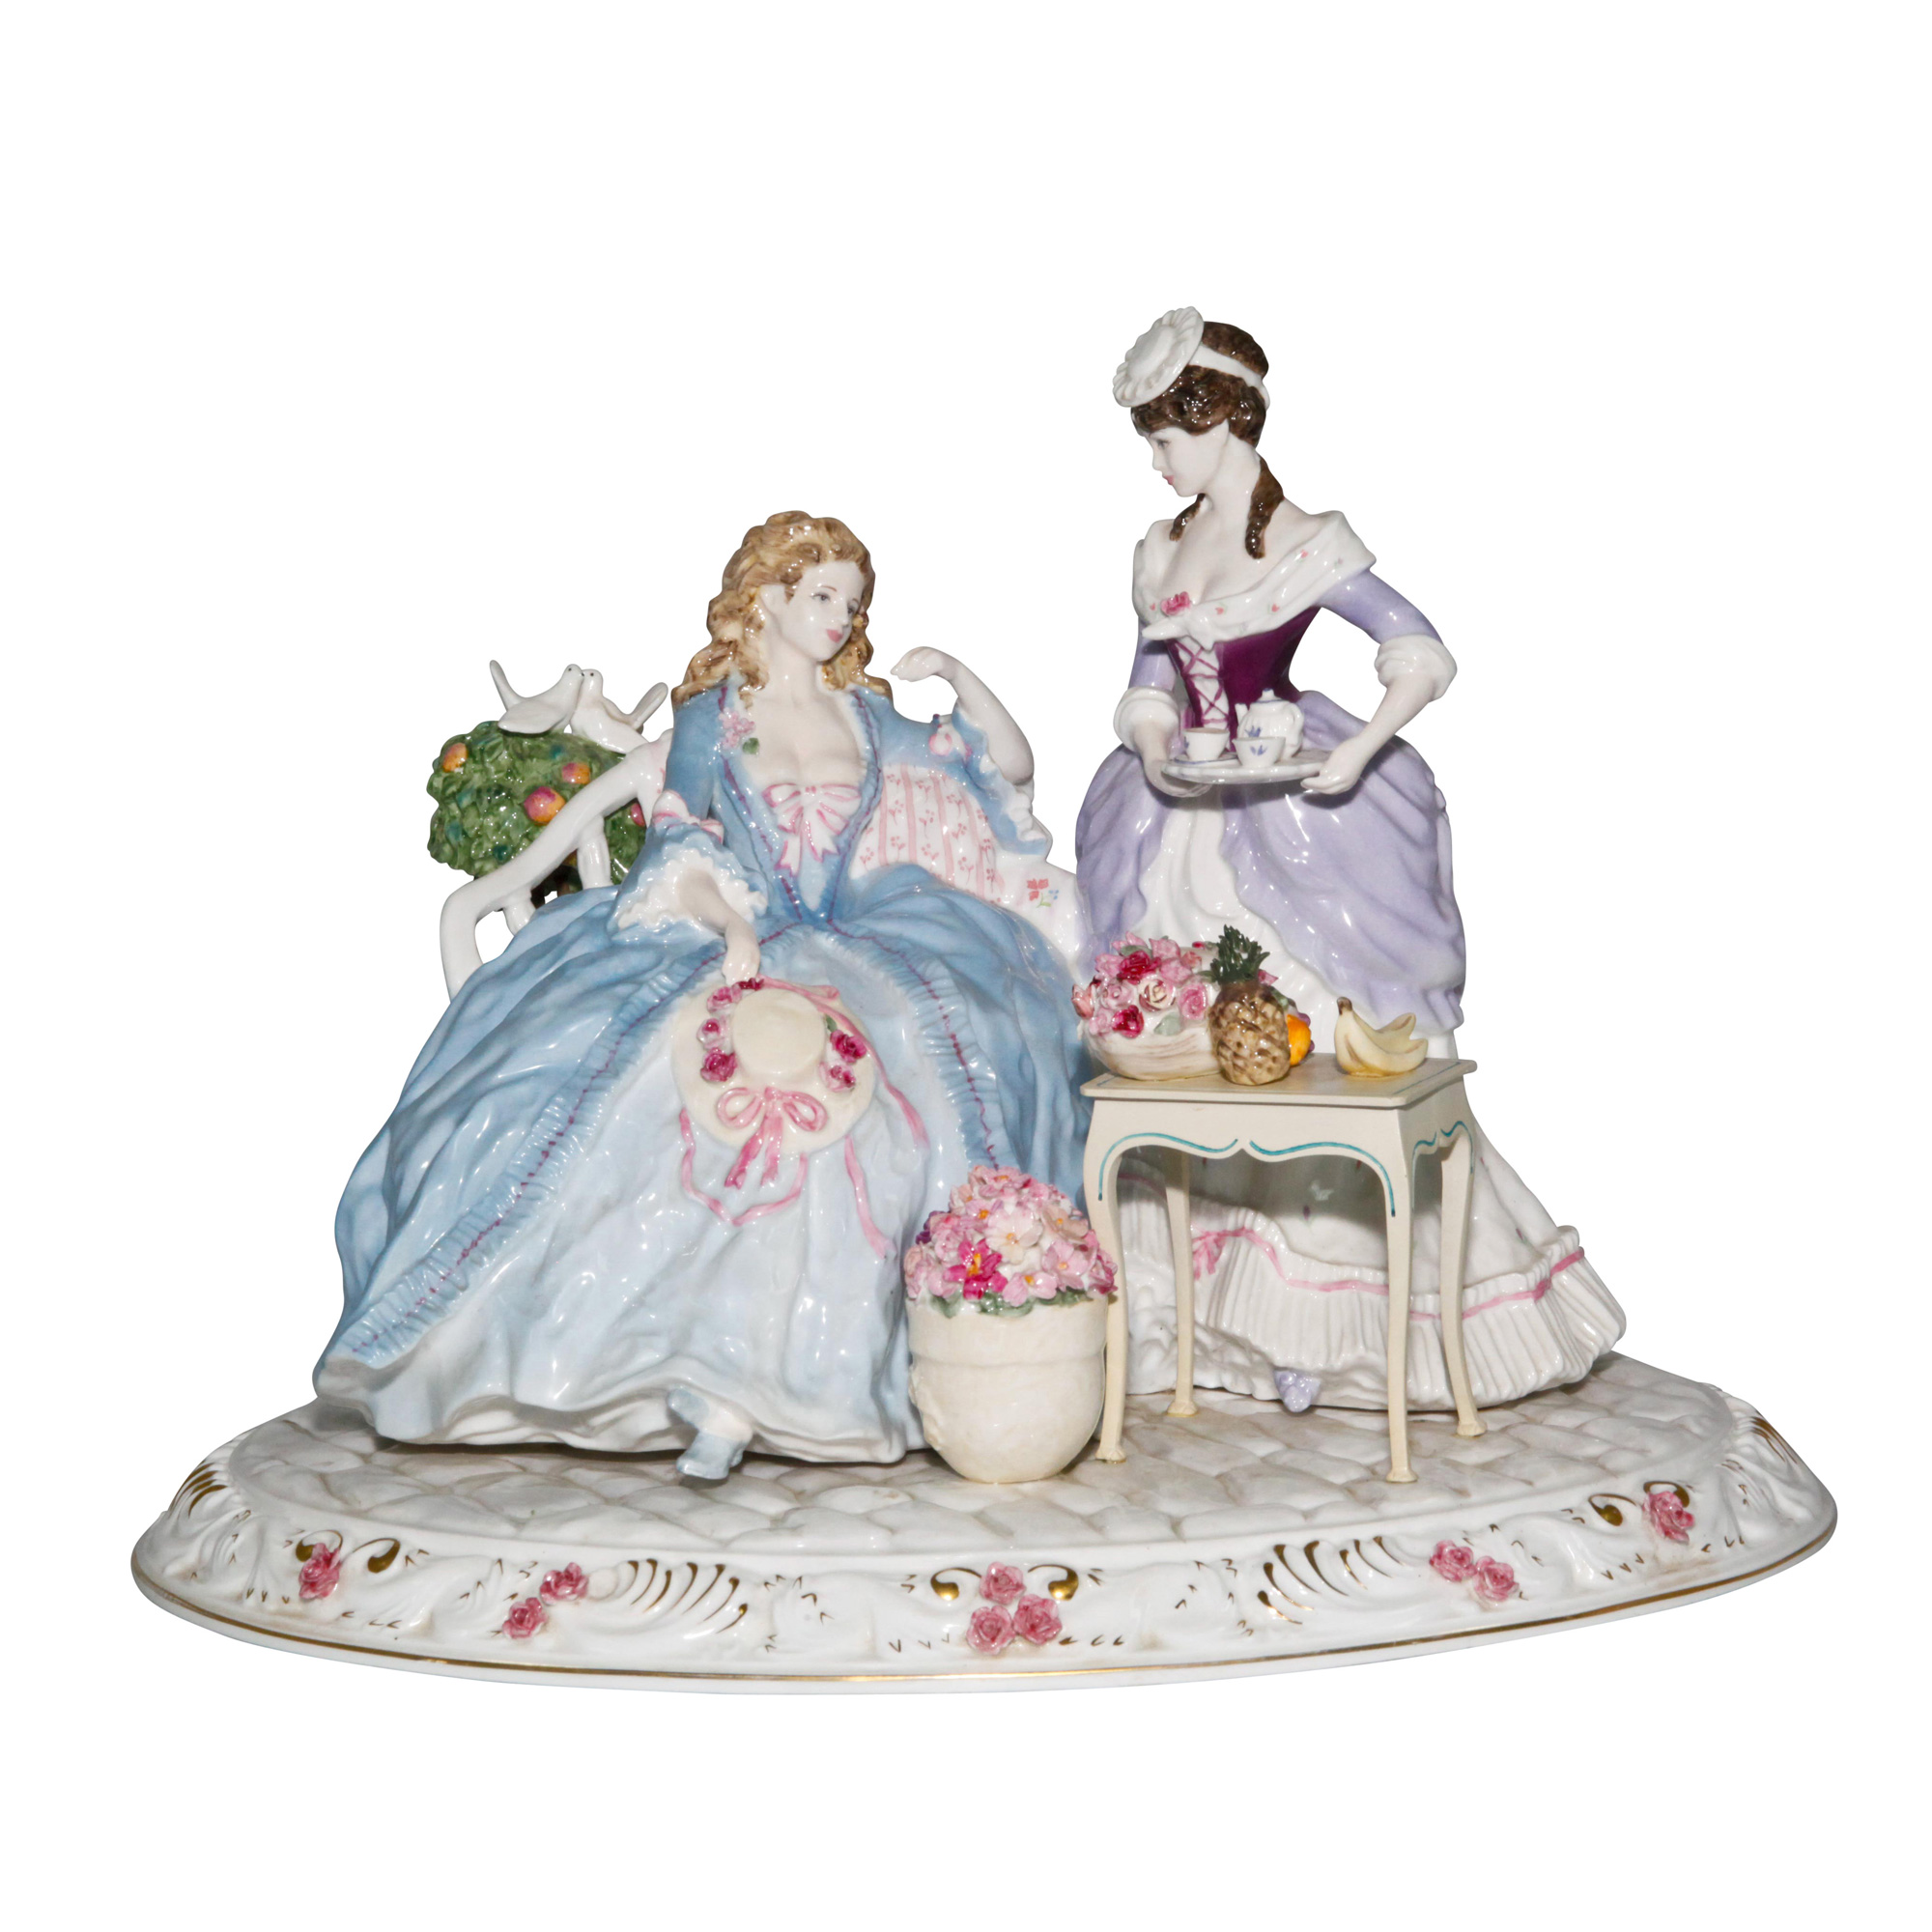 Heirloom FOY Tableau CW499 - Coalport Figurine